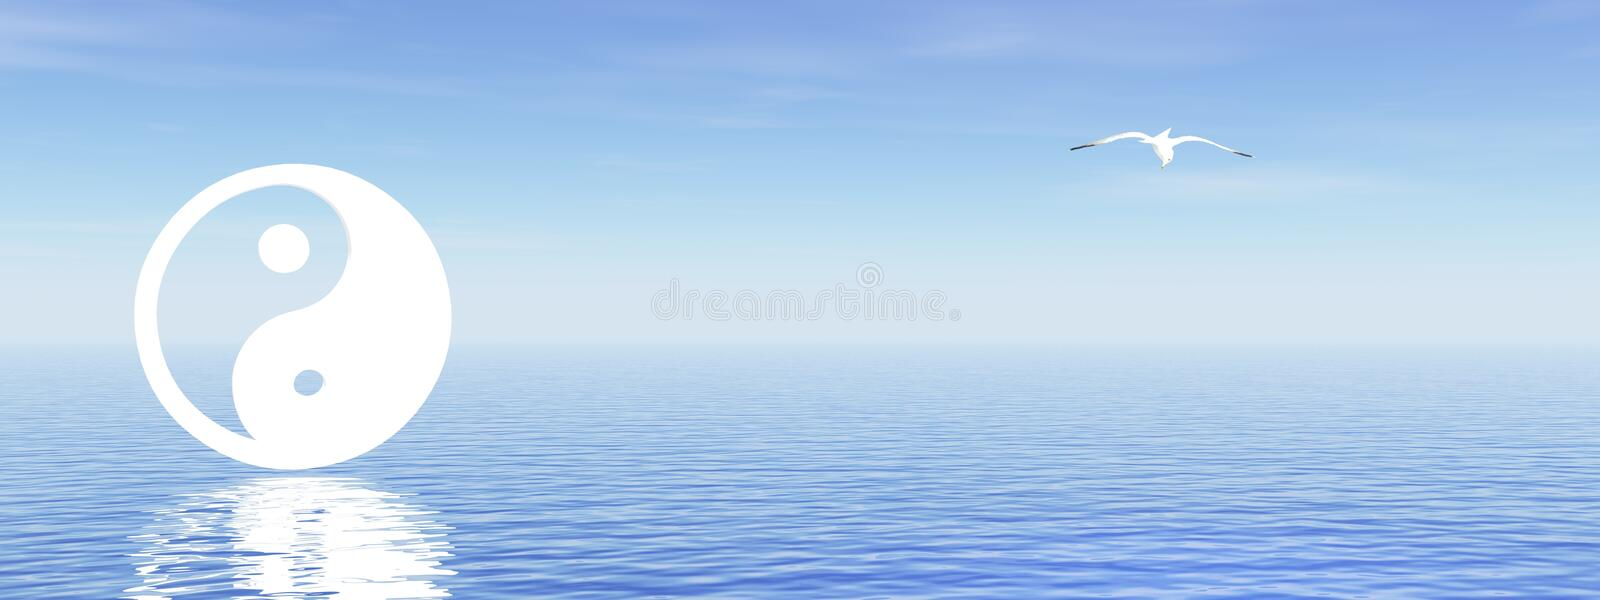 Download Yin and yang on blue ocean stock illustration. Illustration of tranquility - 20046500